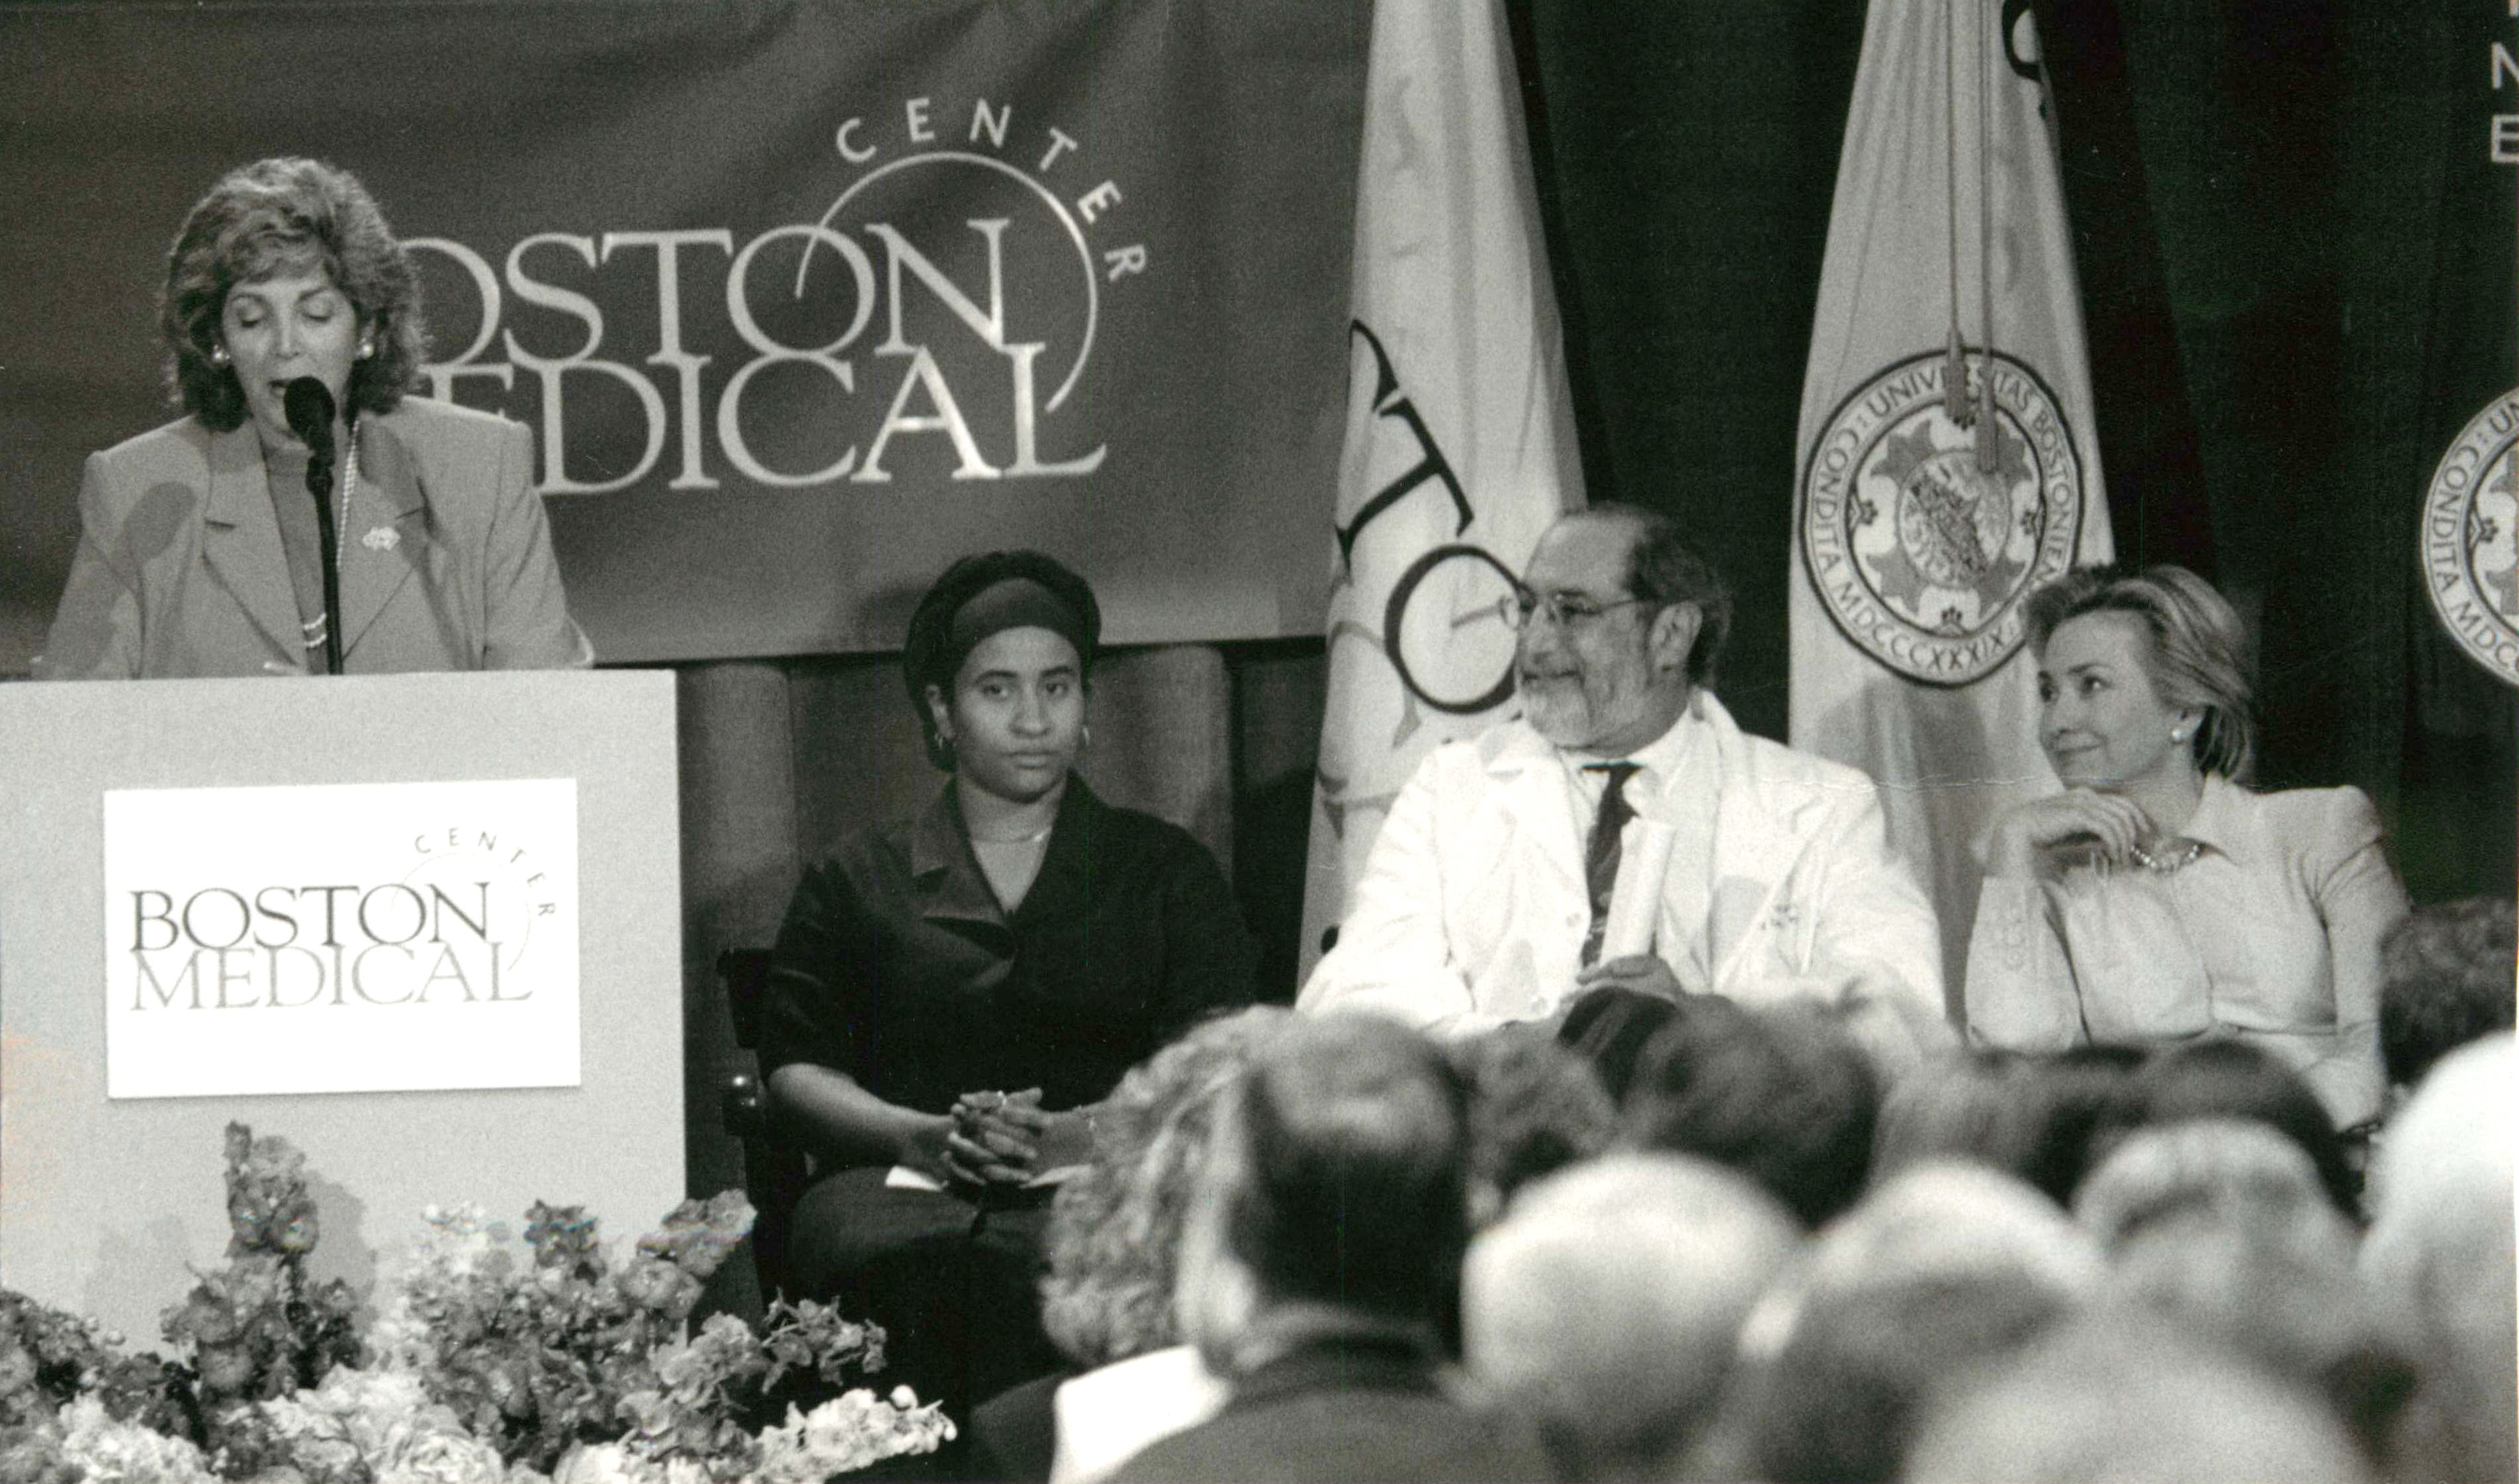 Barry Zuckerman, MD and Hillary Clinton at Reach Out and Read's 10th anniversary celebration at Boston Medical Center